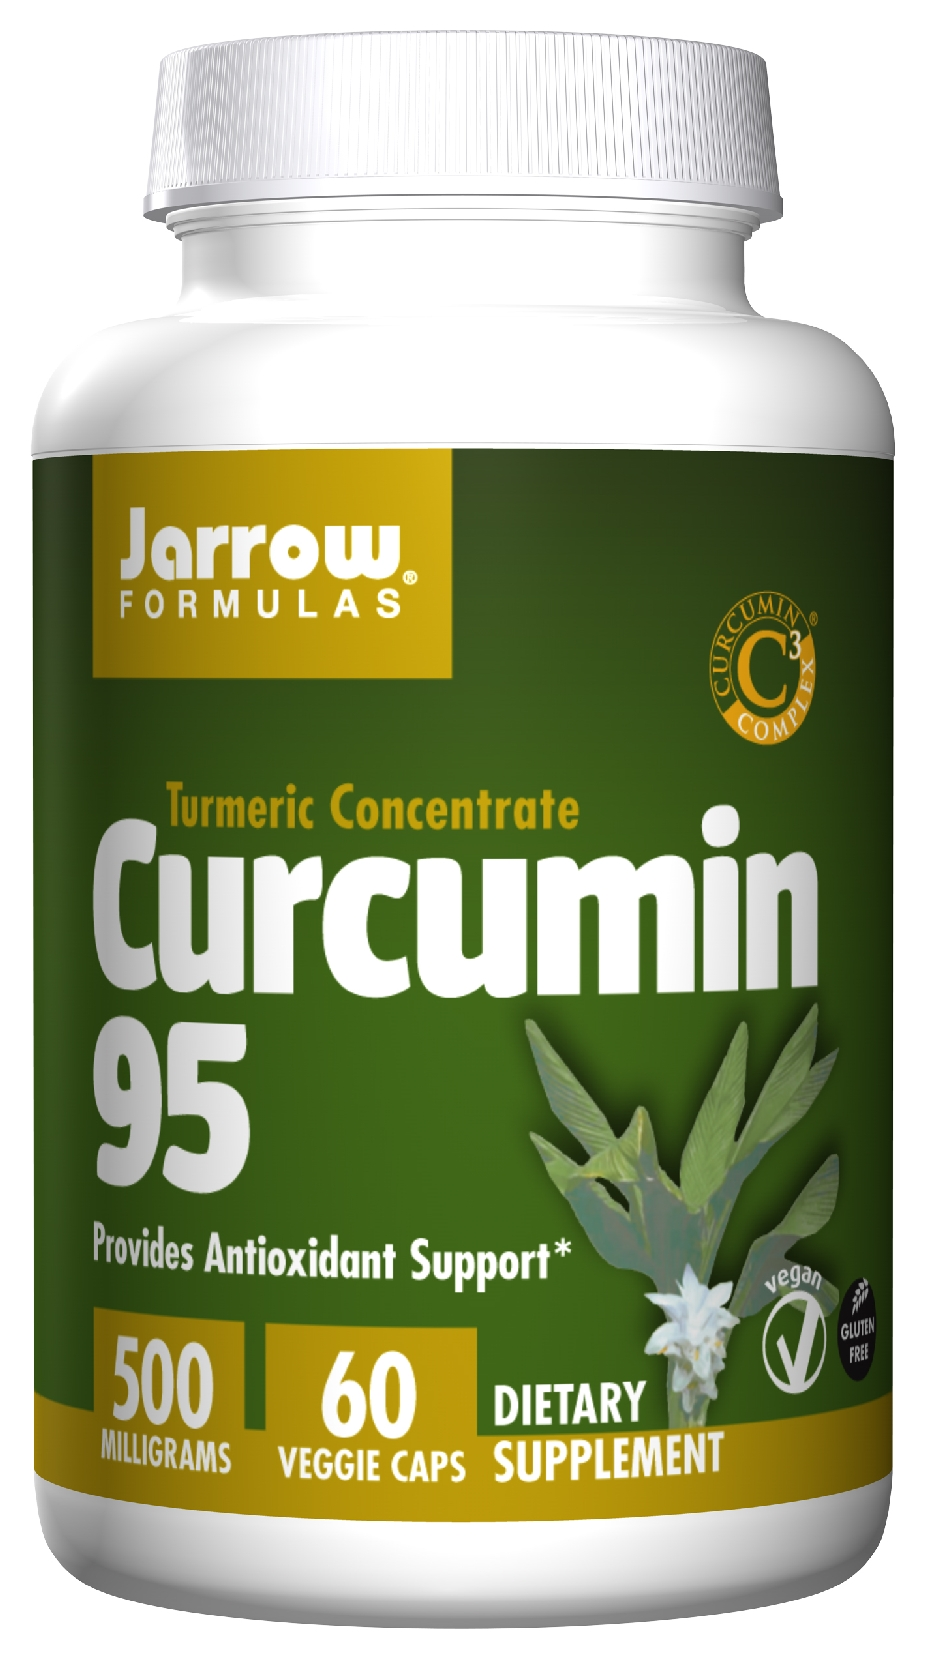 Curcumin 95 500 mg 60 caps by Jarrow Formulas